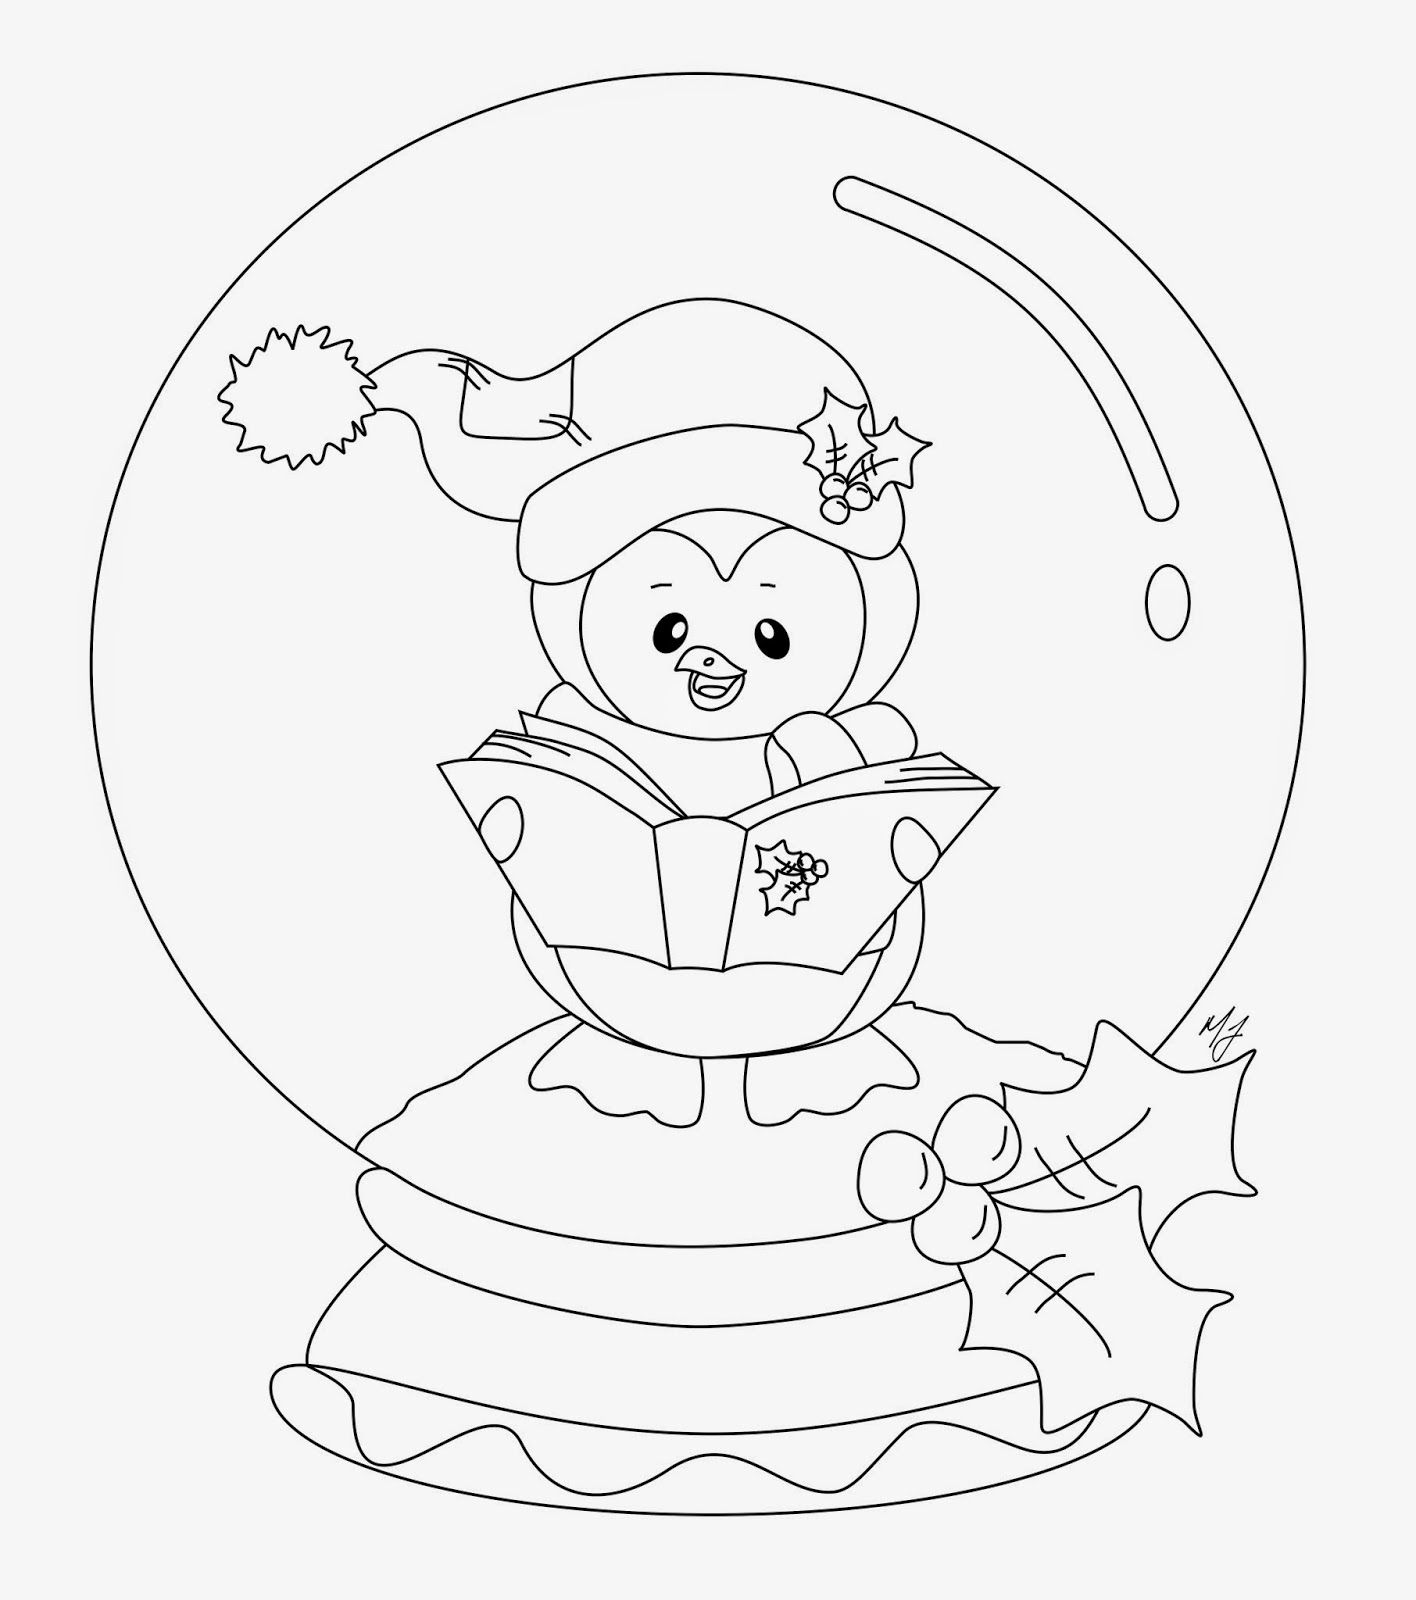 snowglobe+penguin+2+bw.jpg (JPEG Image, 1416 × 1600 pixels) - Scaled (36%)  | Penguin coloring pages, Coloring pages, Christmas coloring pages